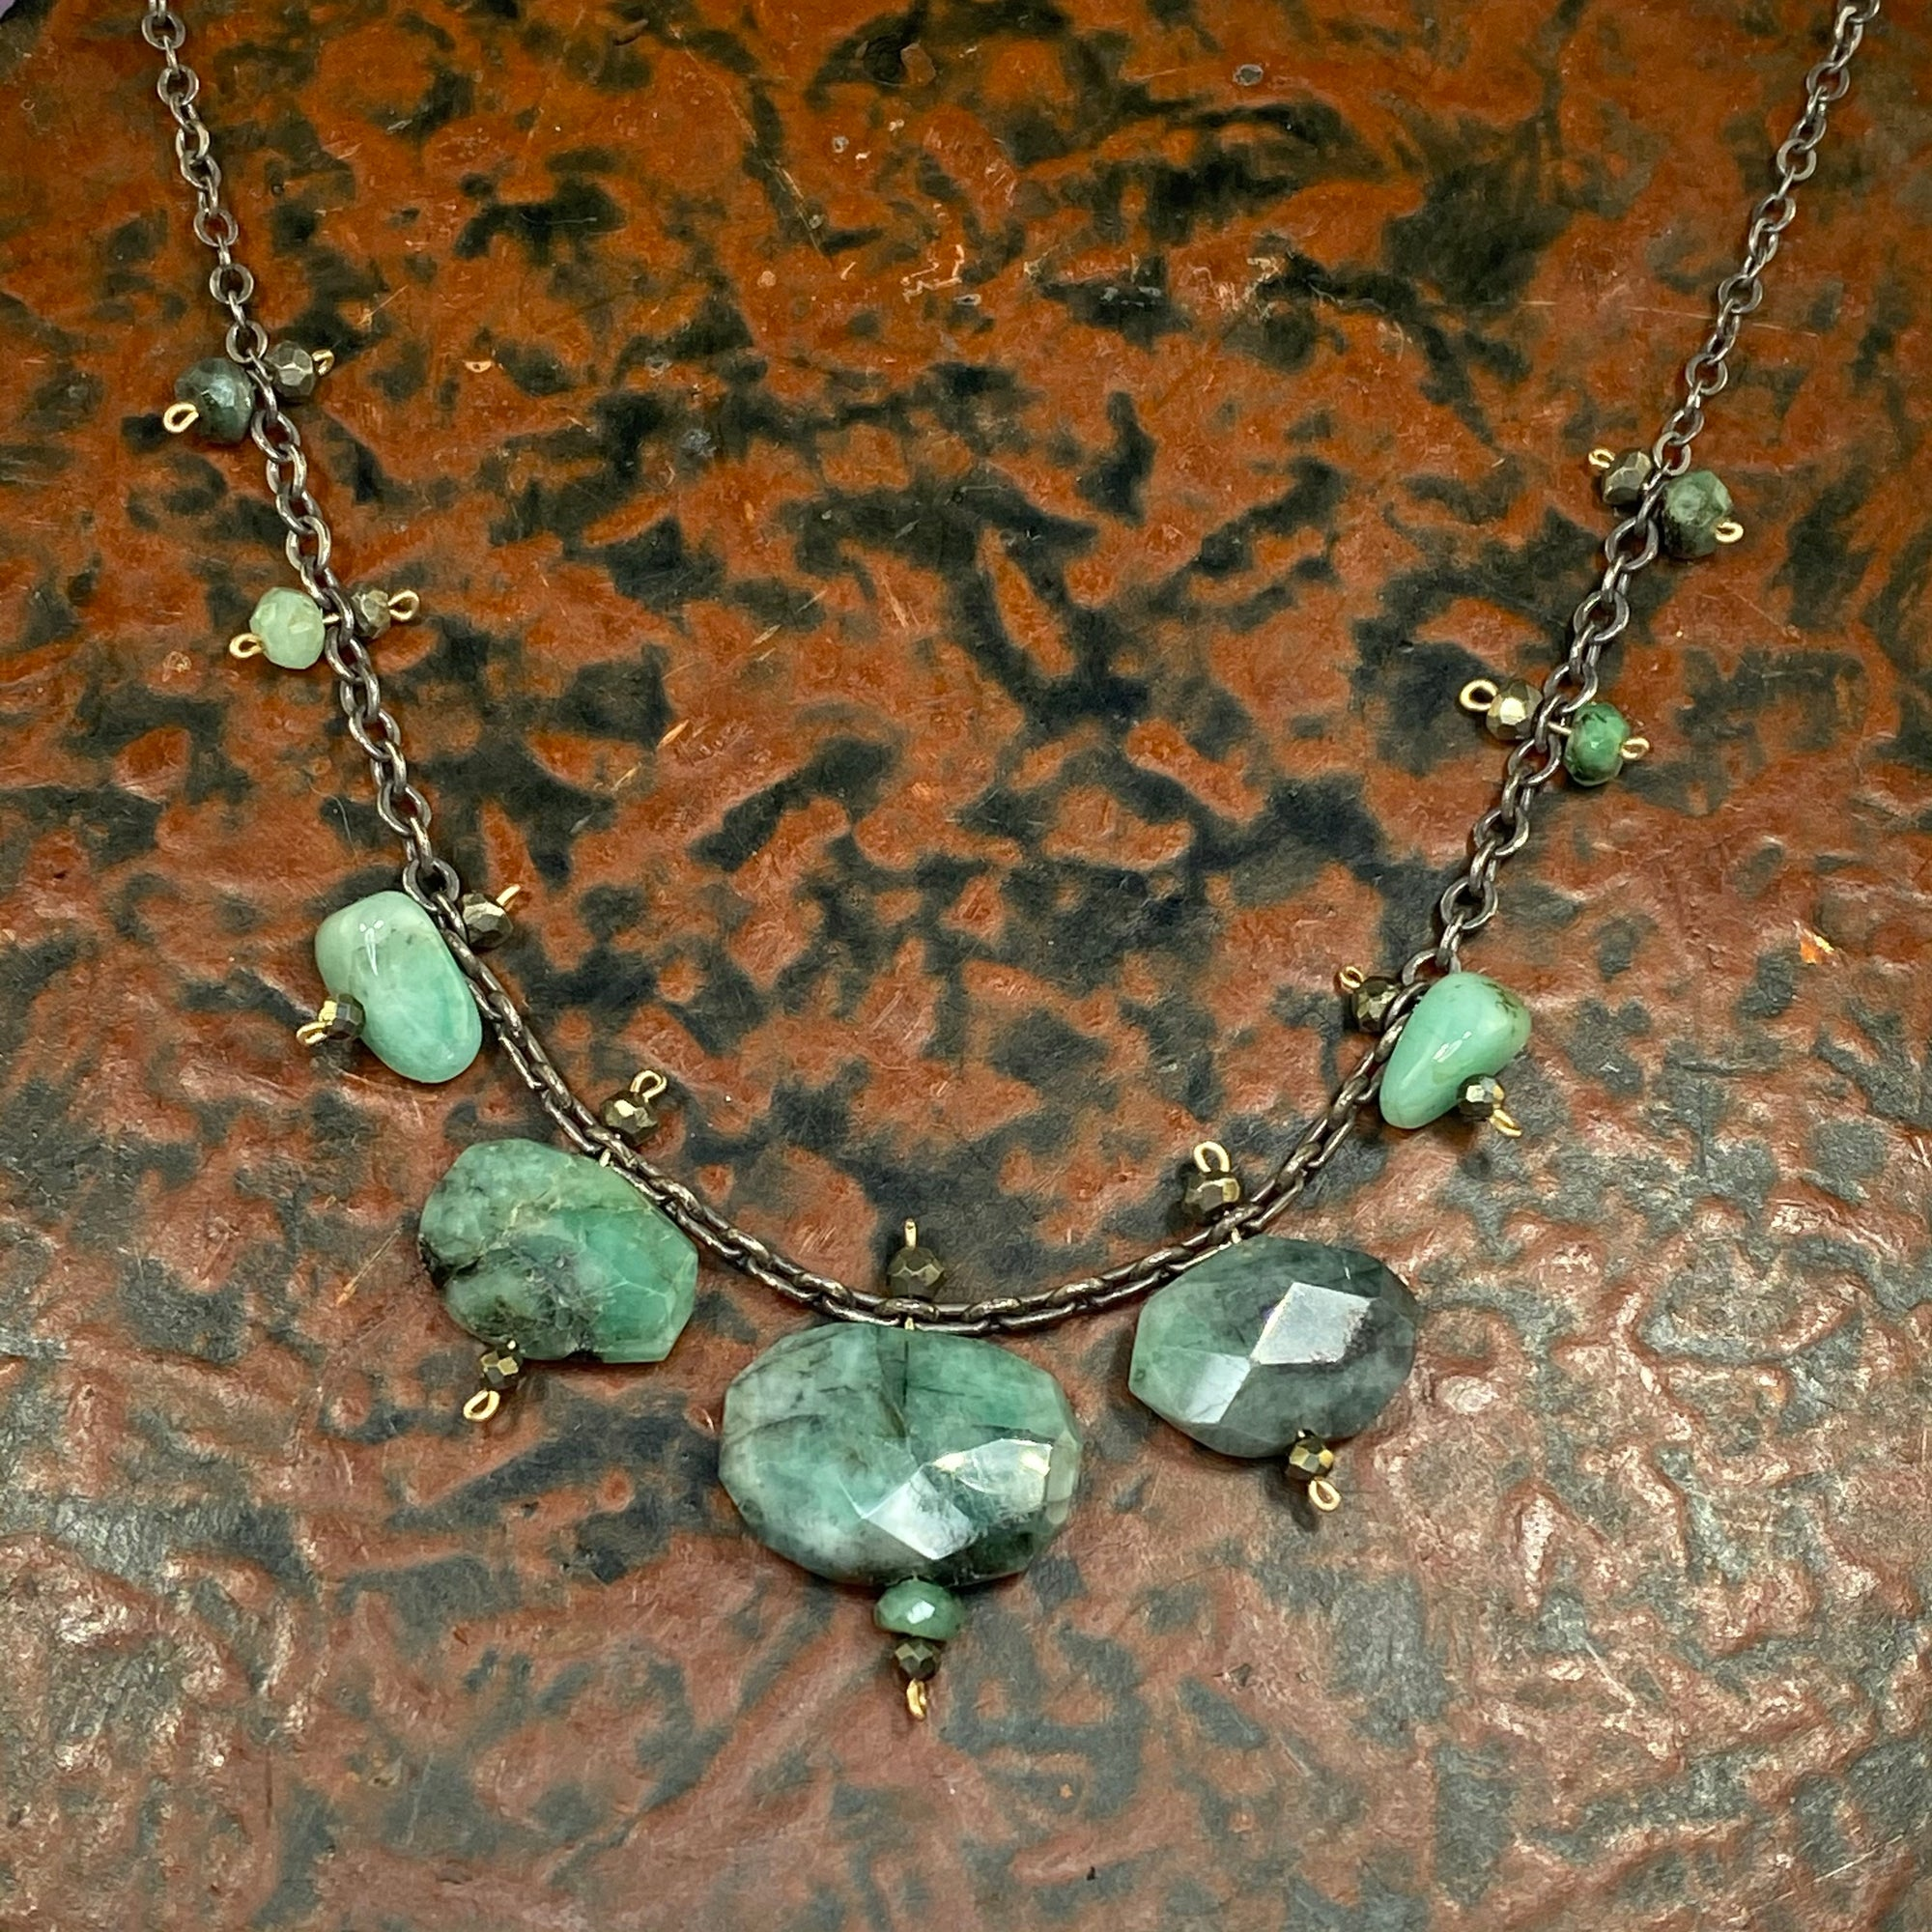 Emerald Pond Necklace - Heart of the Home PA